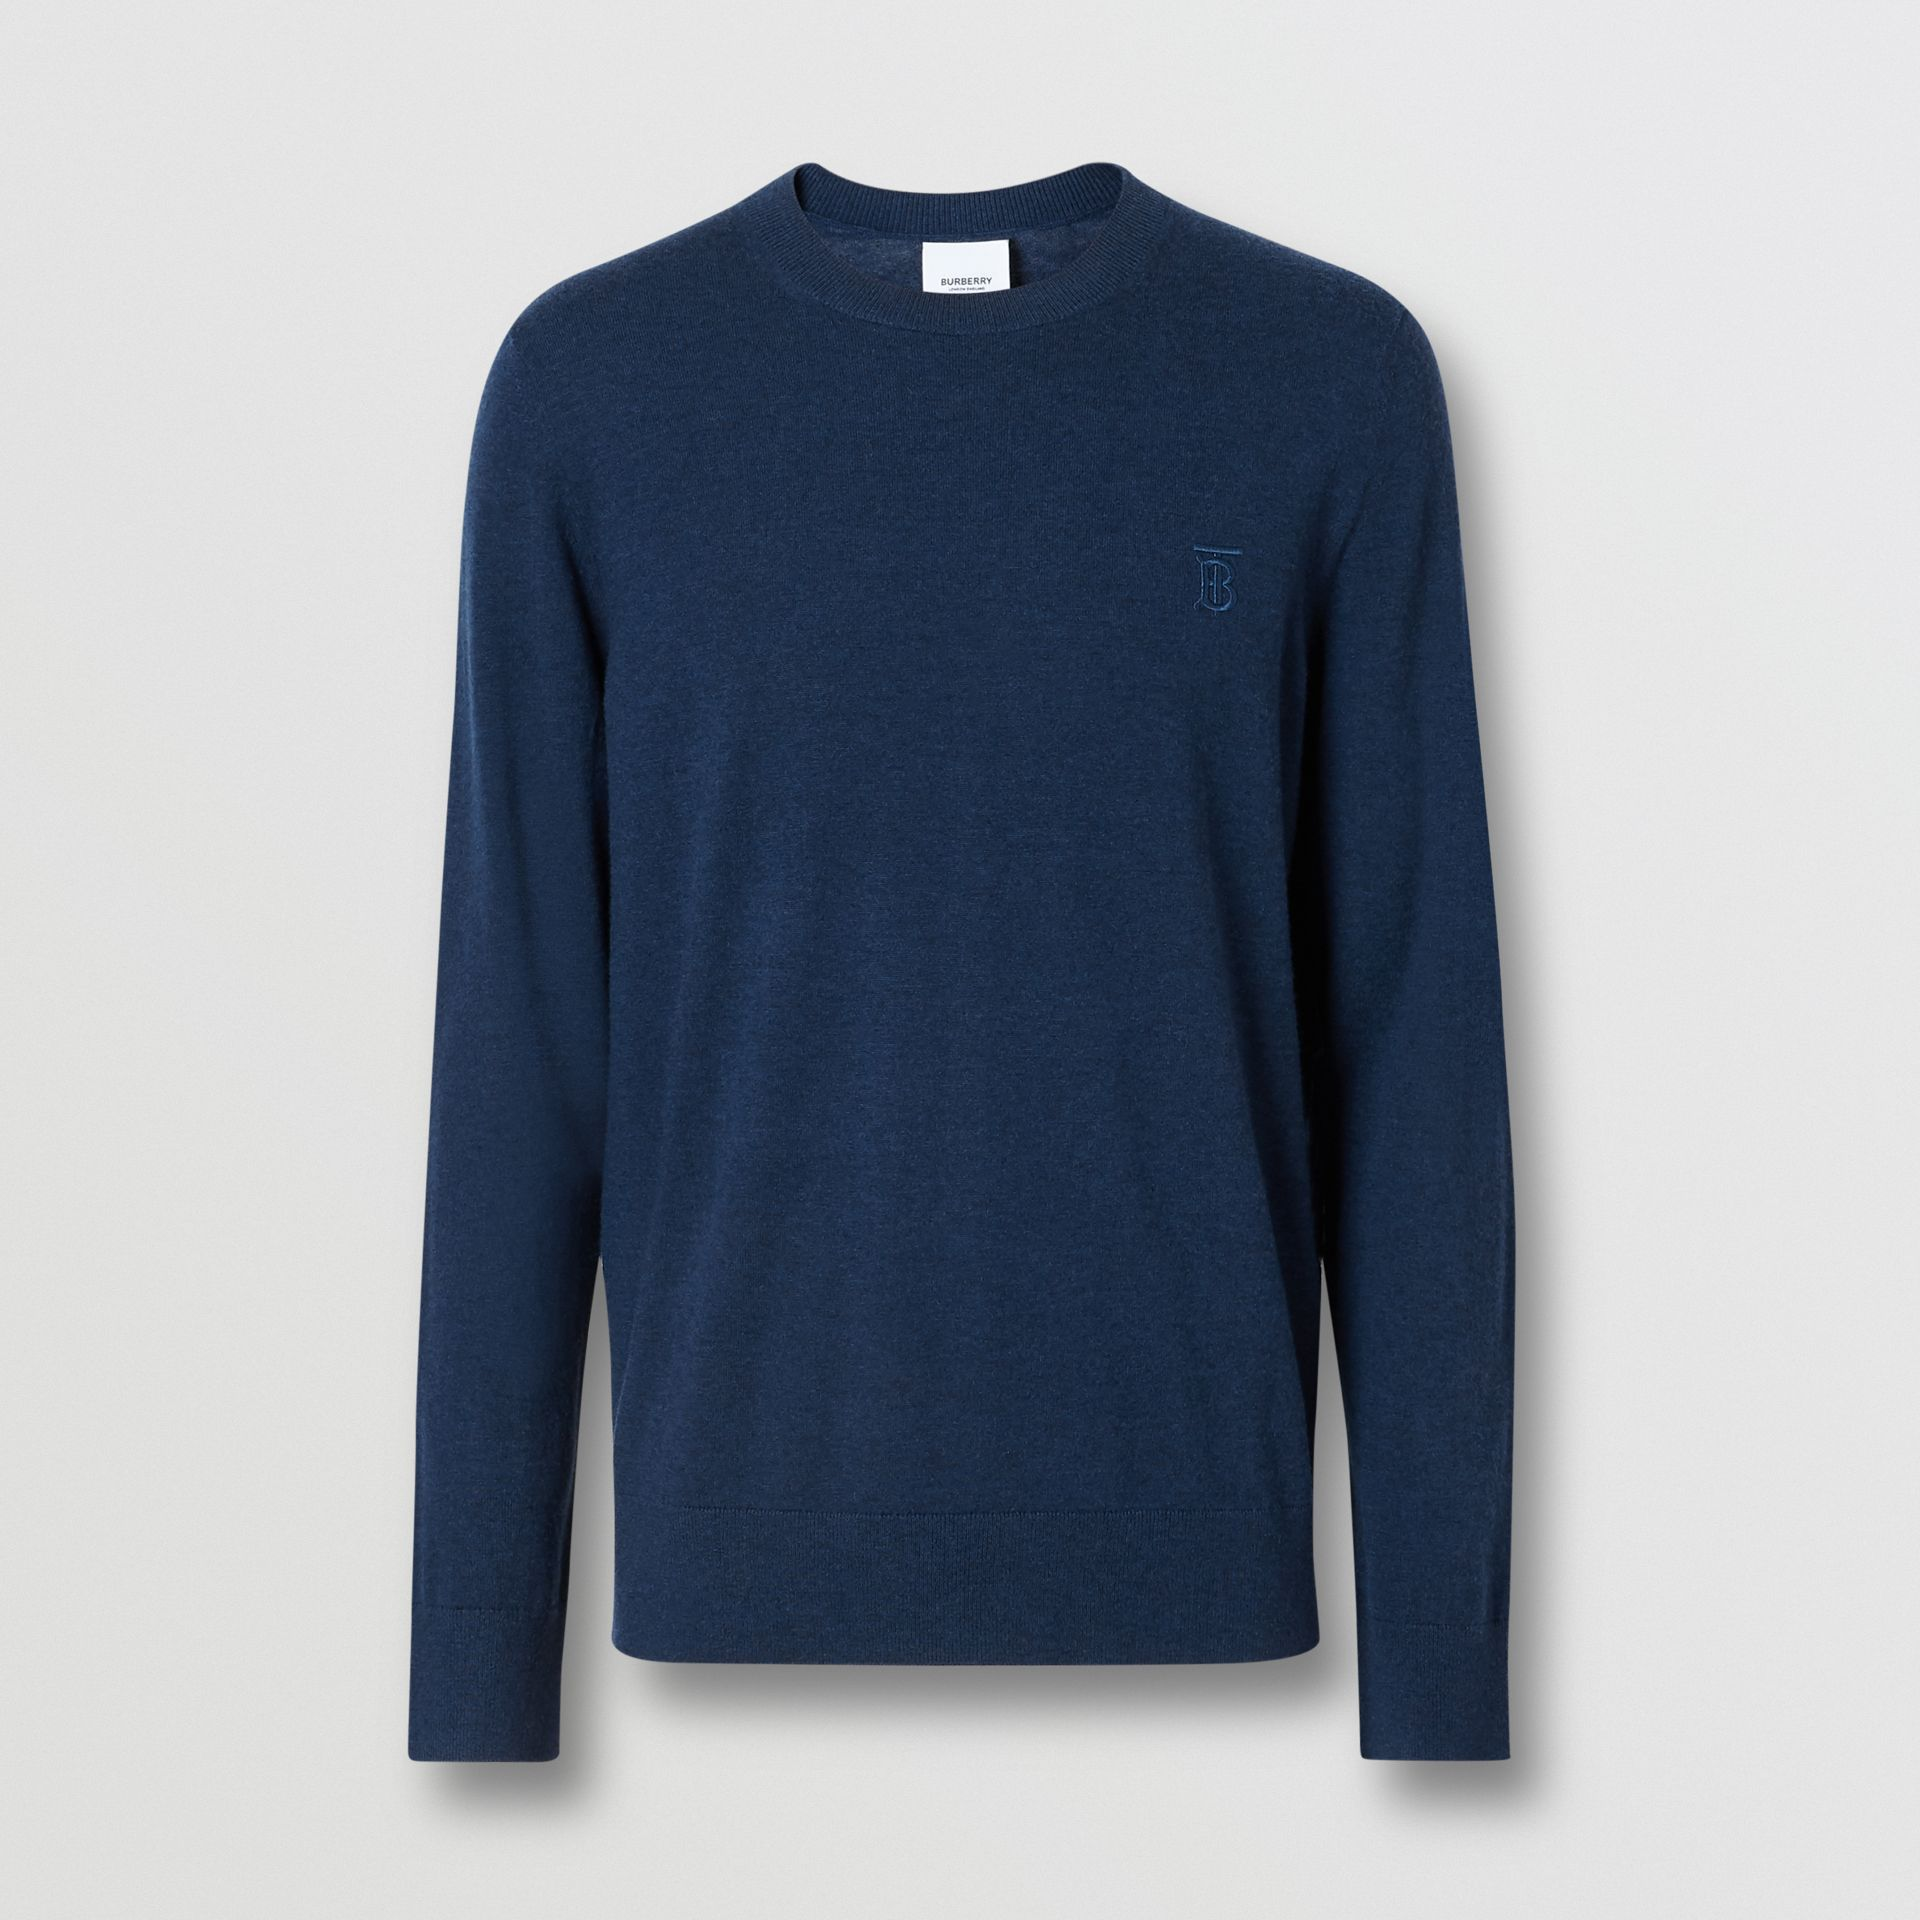 Monogram Motif Cashmere Sweater in Uniform Blue Melange - Men | Burberry - gallery image 3